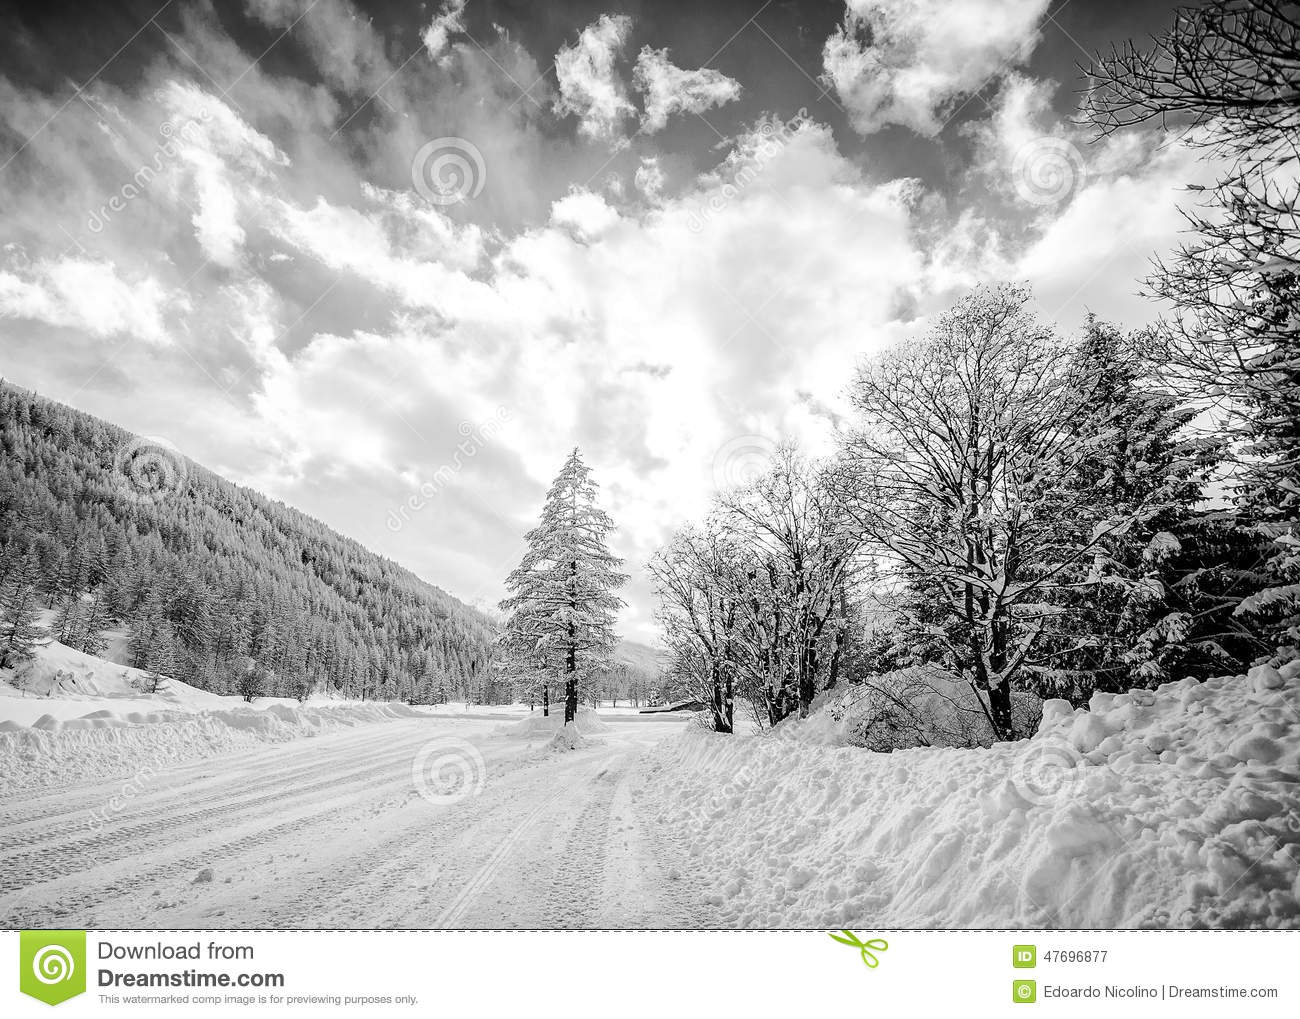 Black And White Snowy Mountain Landscape Stock Photo ...